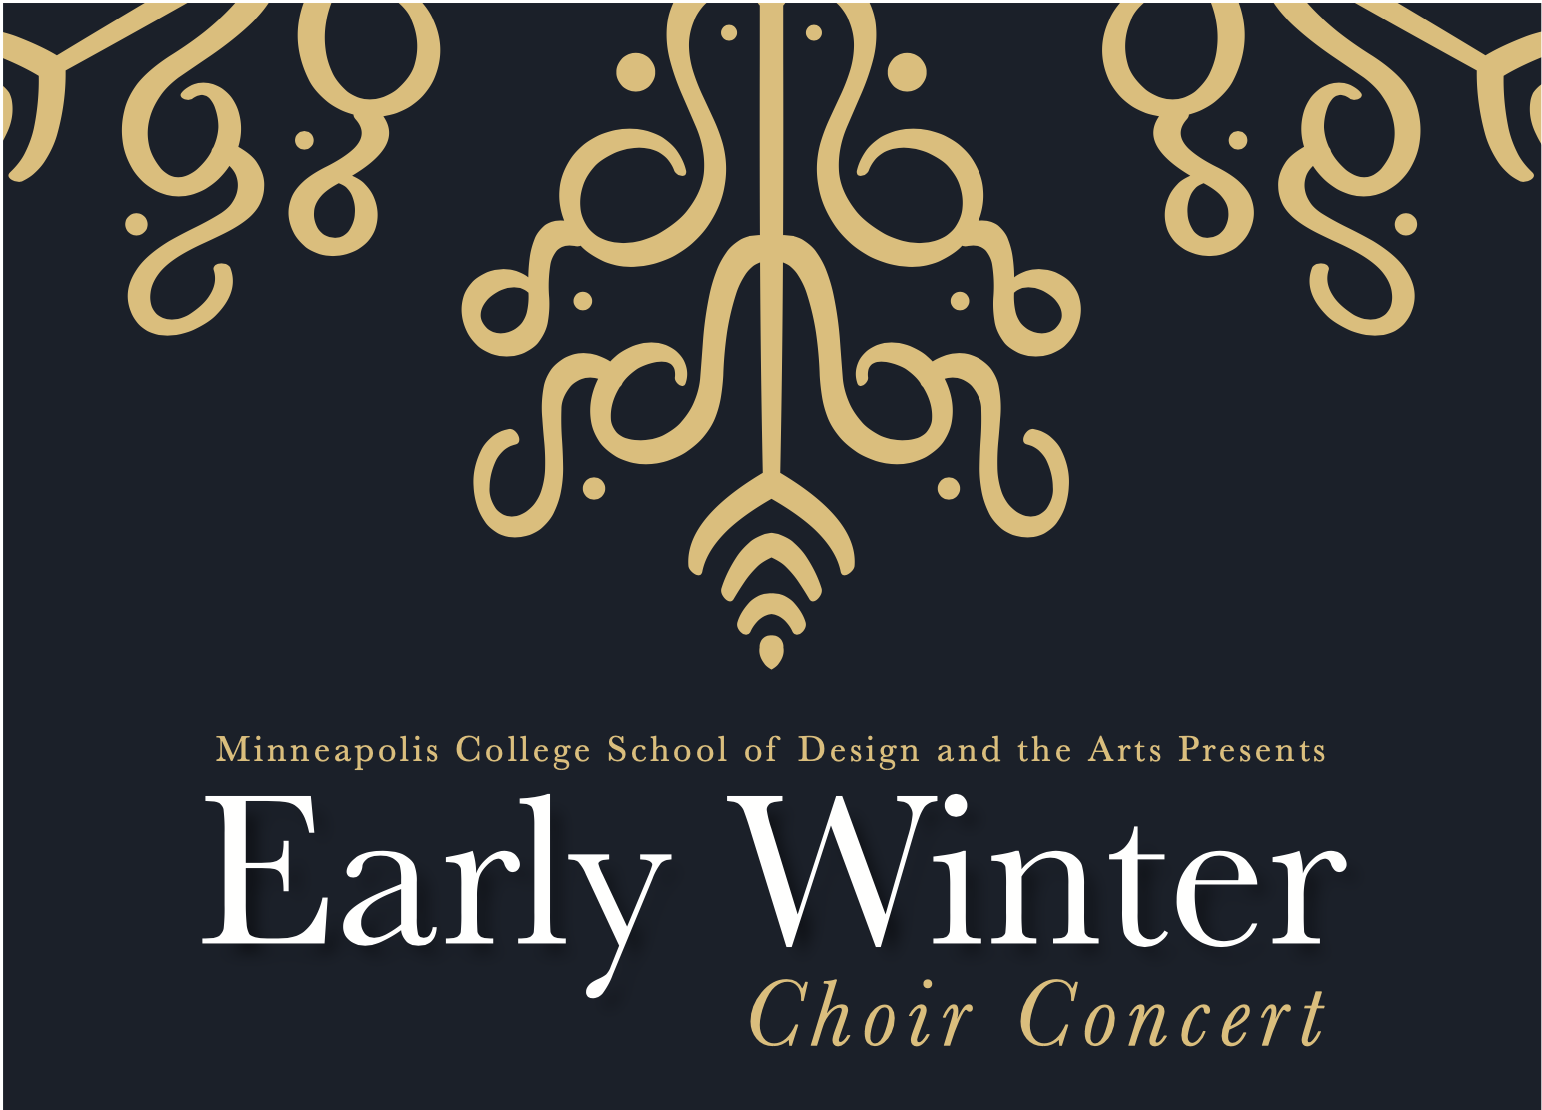 Early Winter Choir Concert graphic